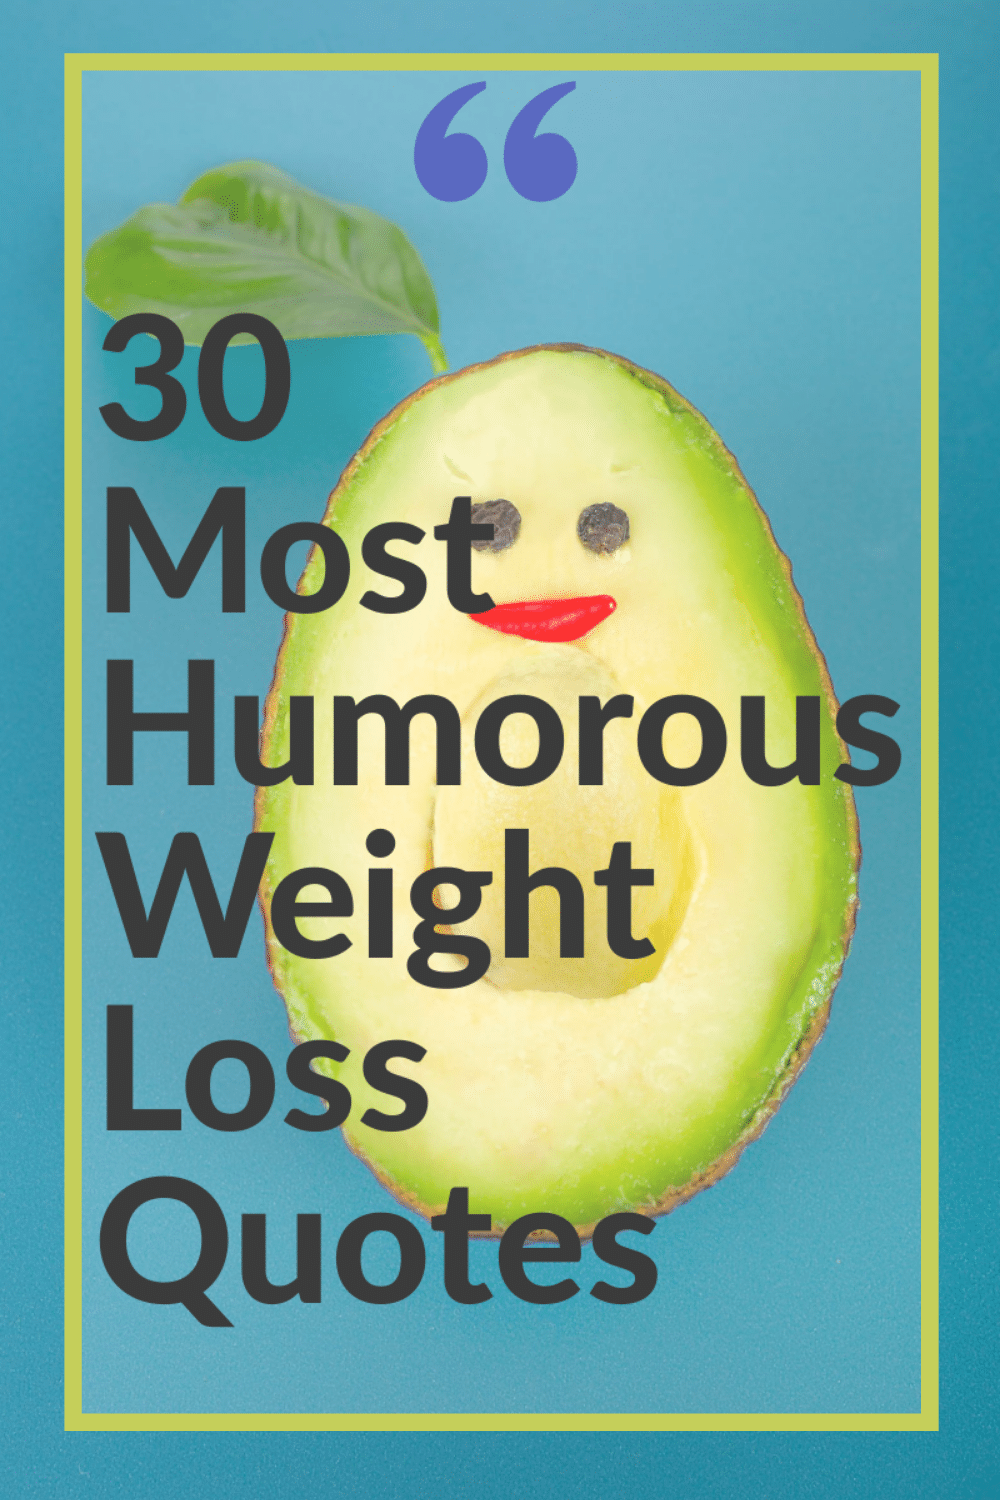 30 of the Best Most Humorous Weight Loss Quotes